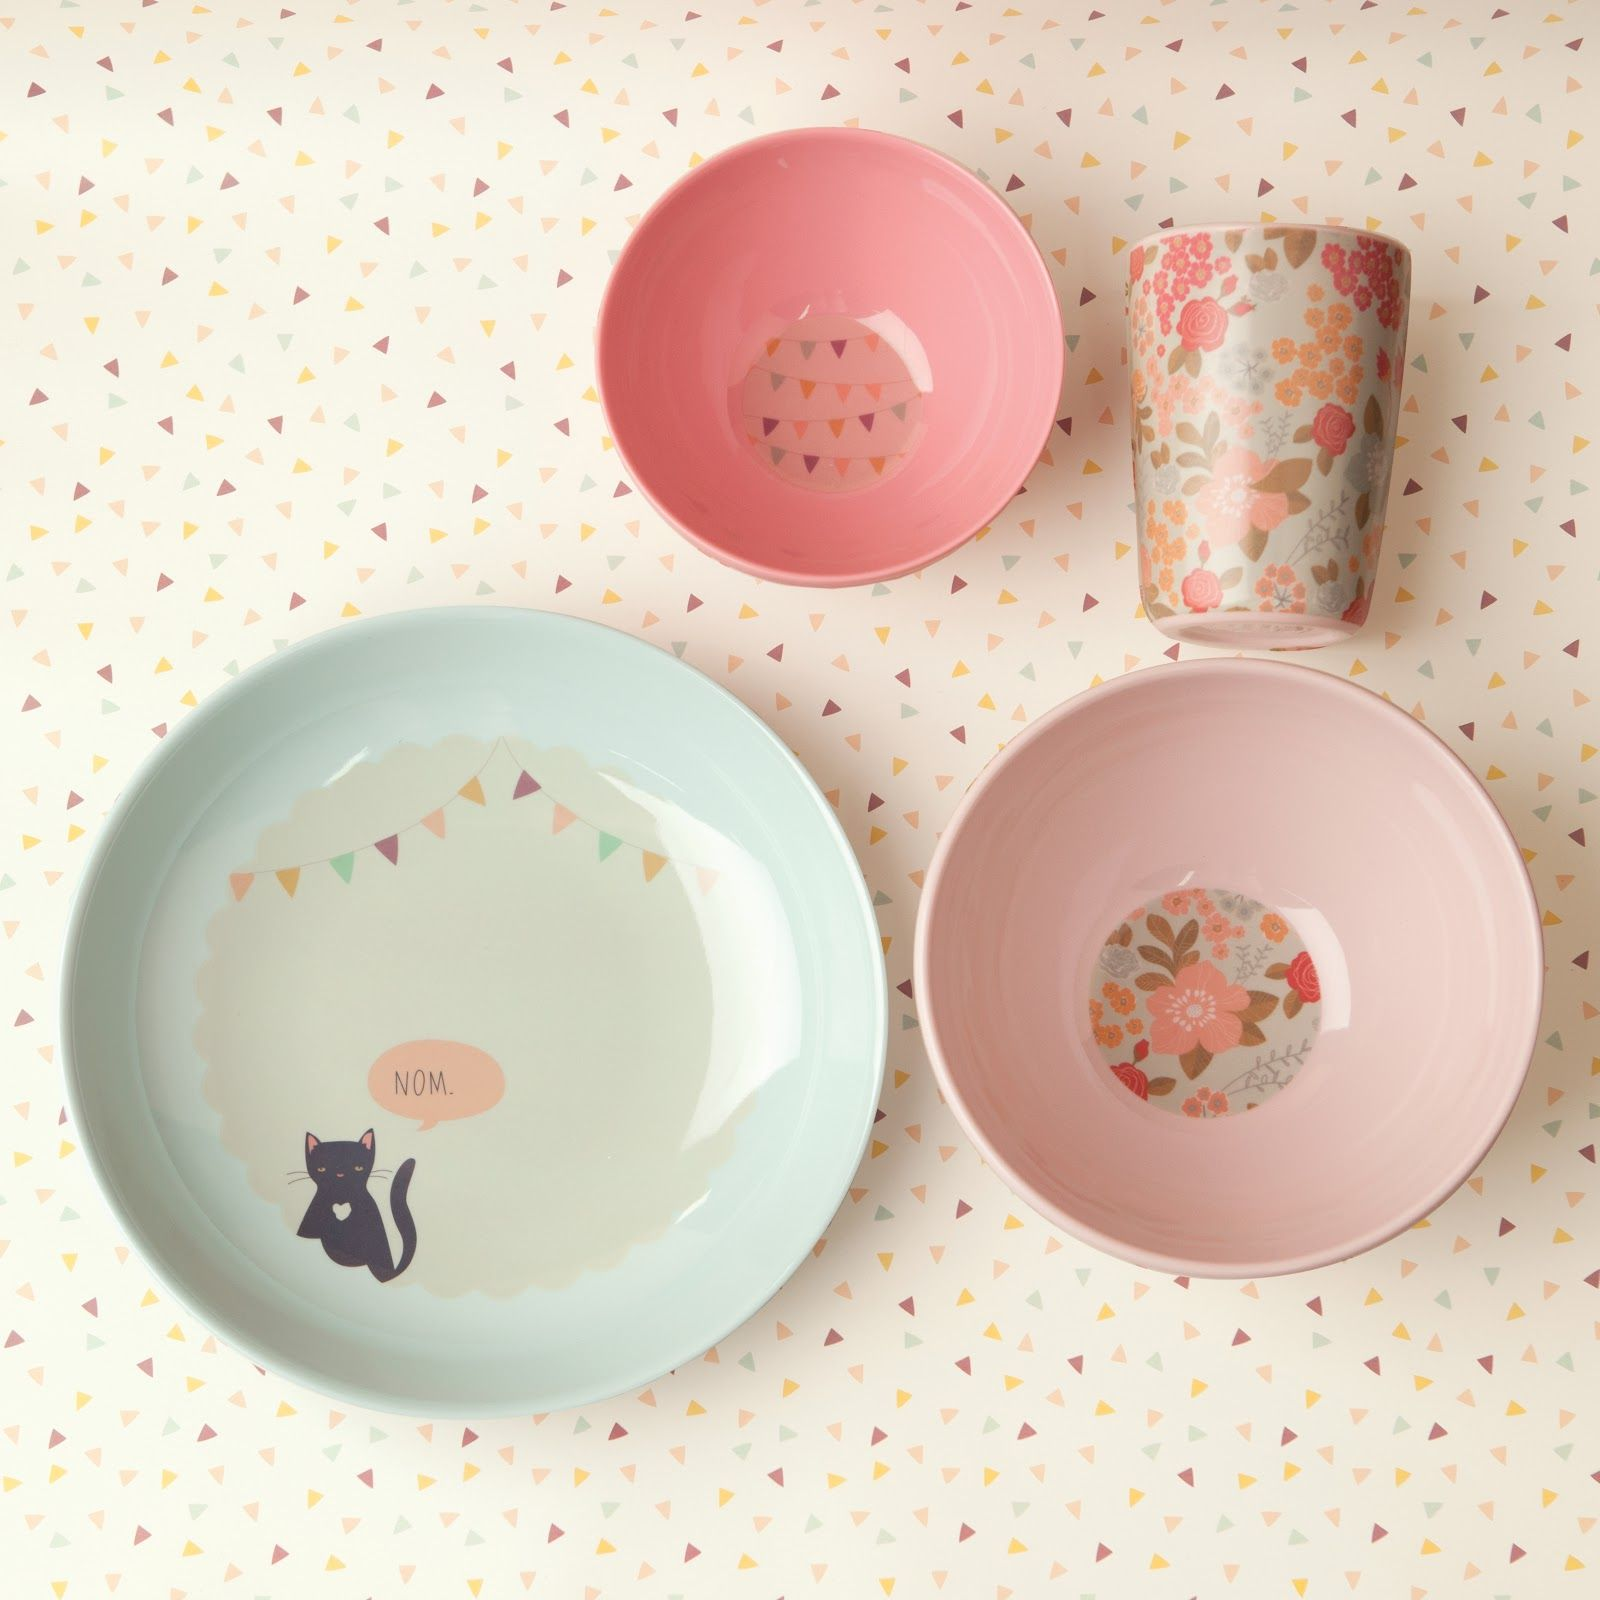 Captivating Thatu0027s Really The Only Way To Describe The Well Fed Kitty Cats Melamine Dinner  Set And Dinosaur Dinner Awesome Design